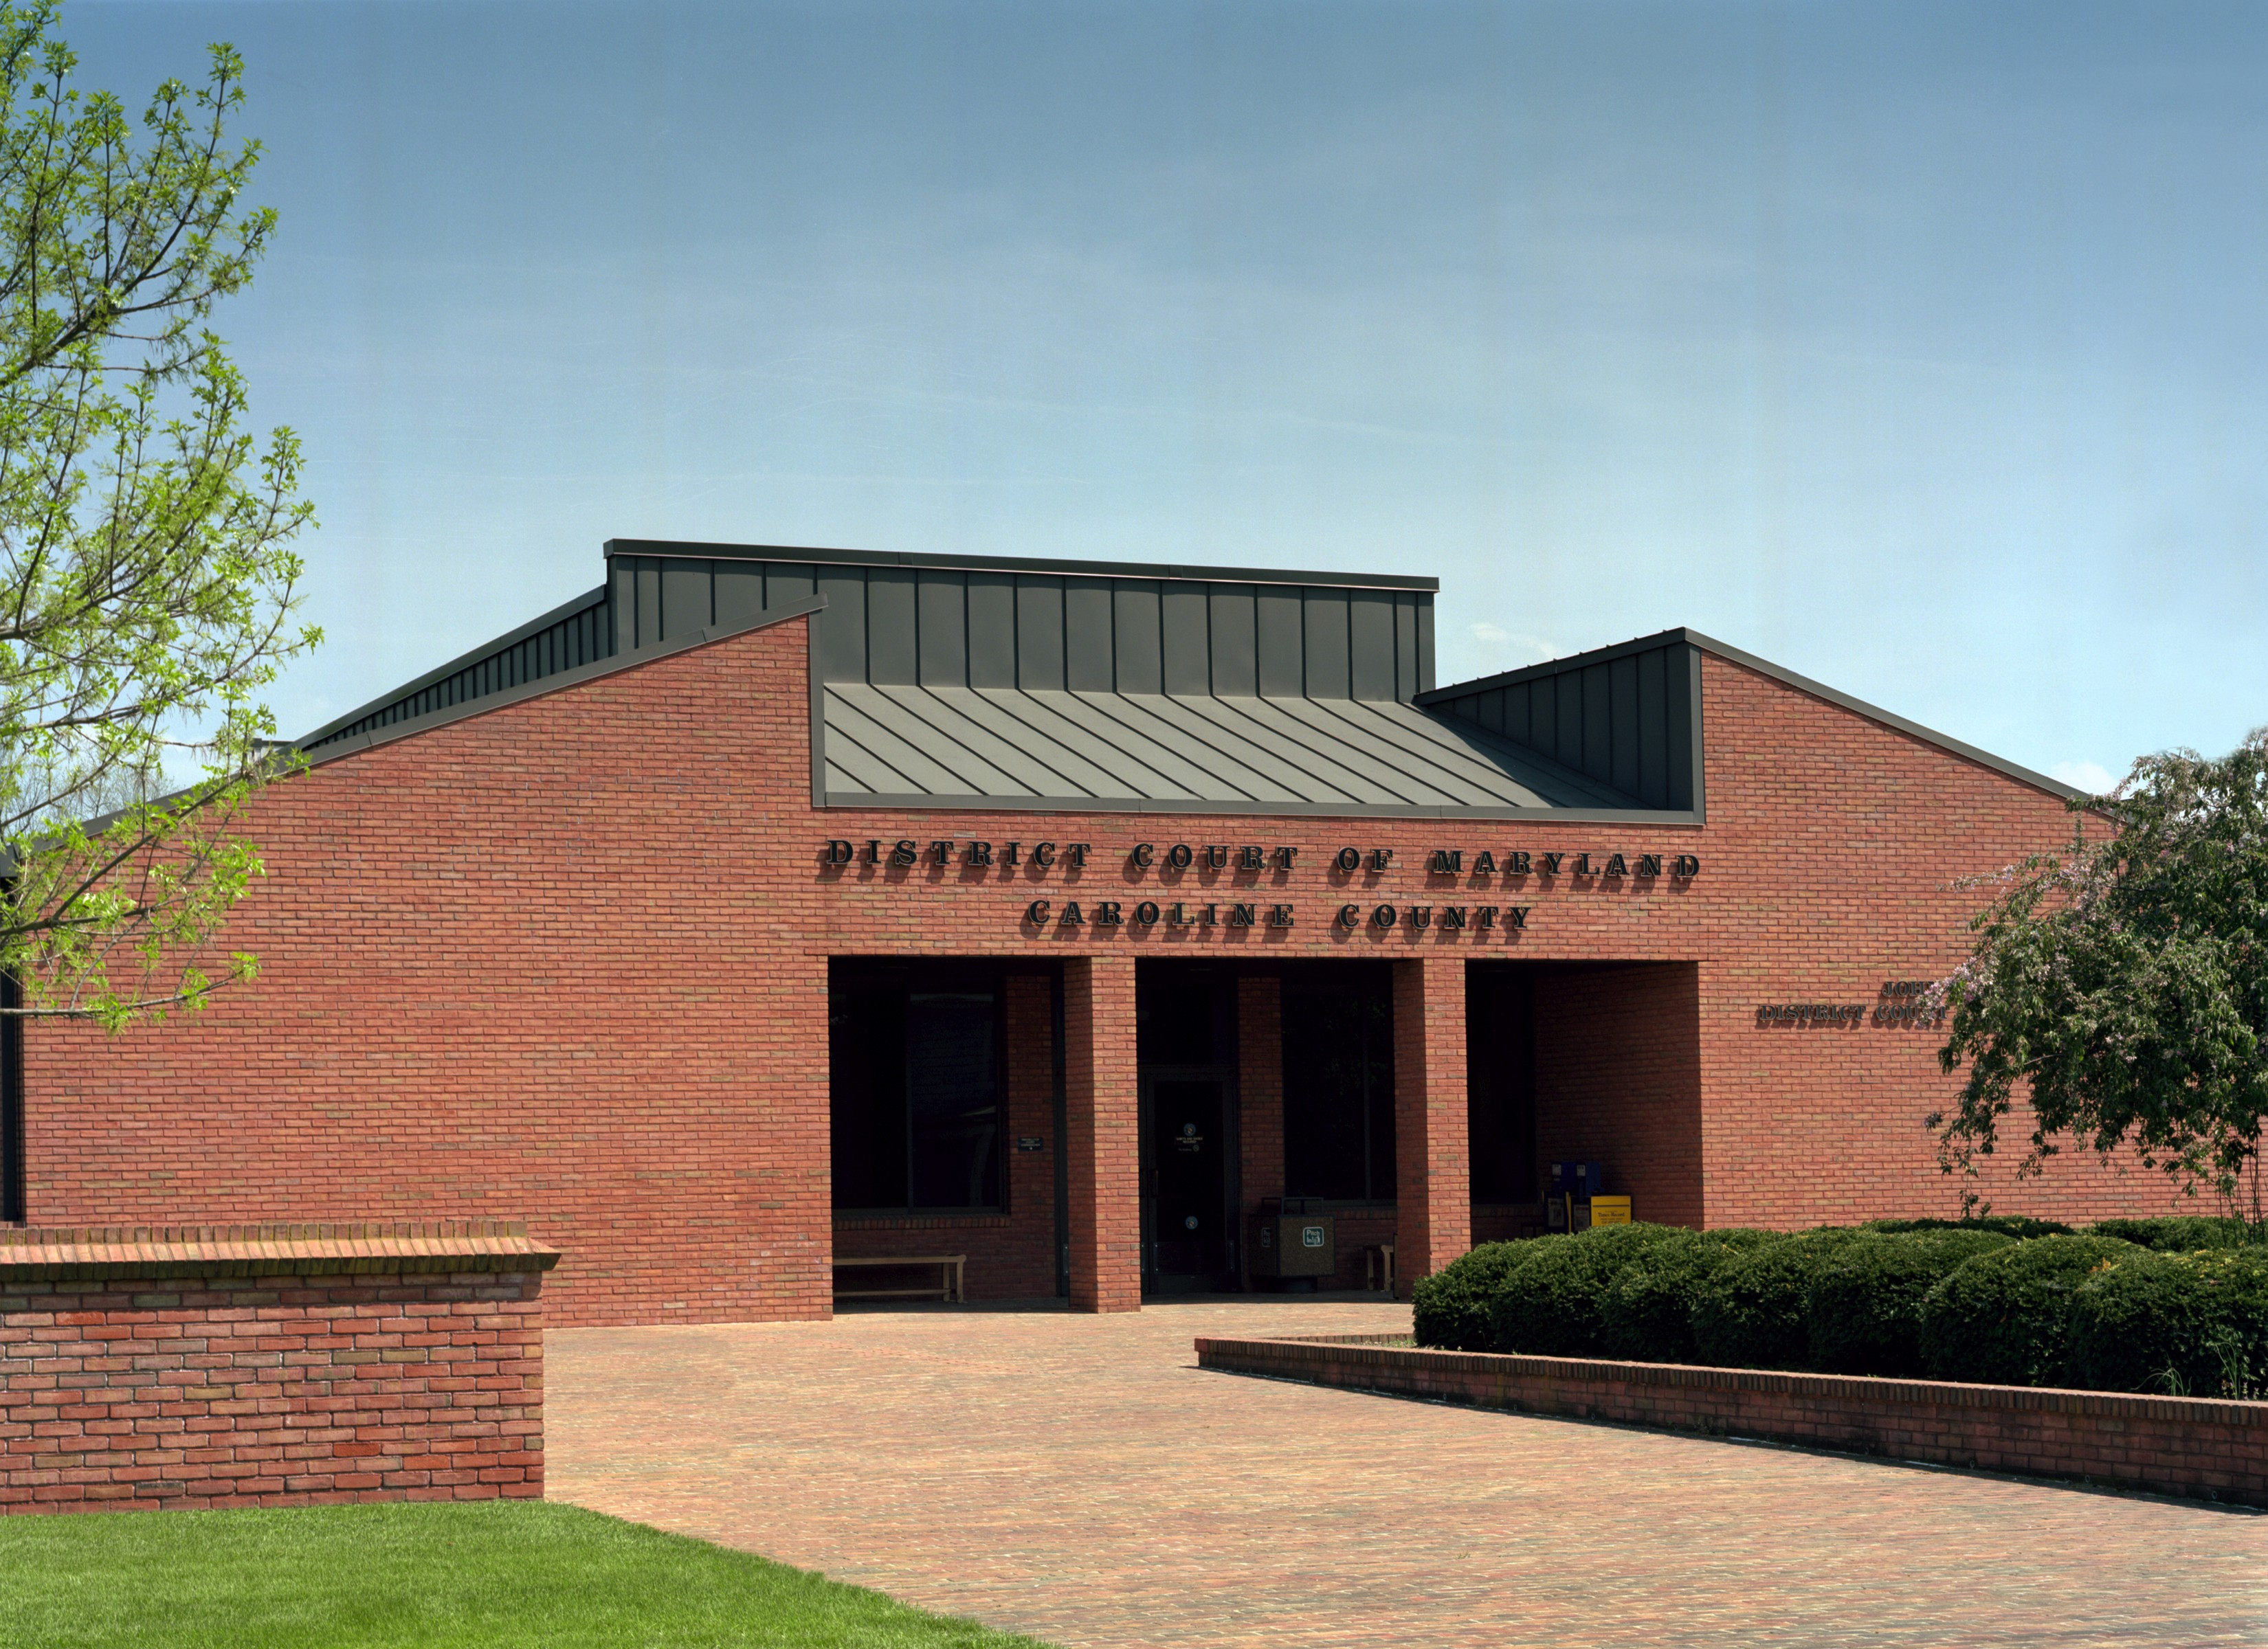 Caroline County District Court